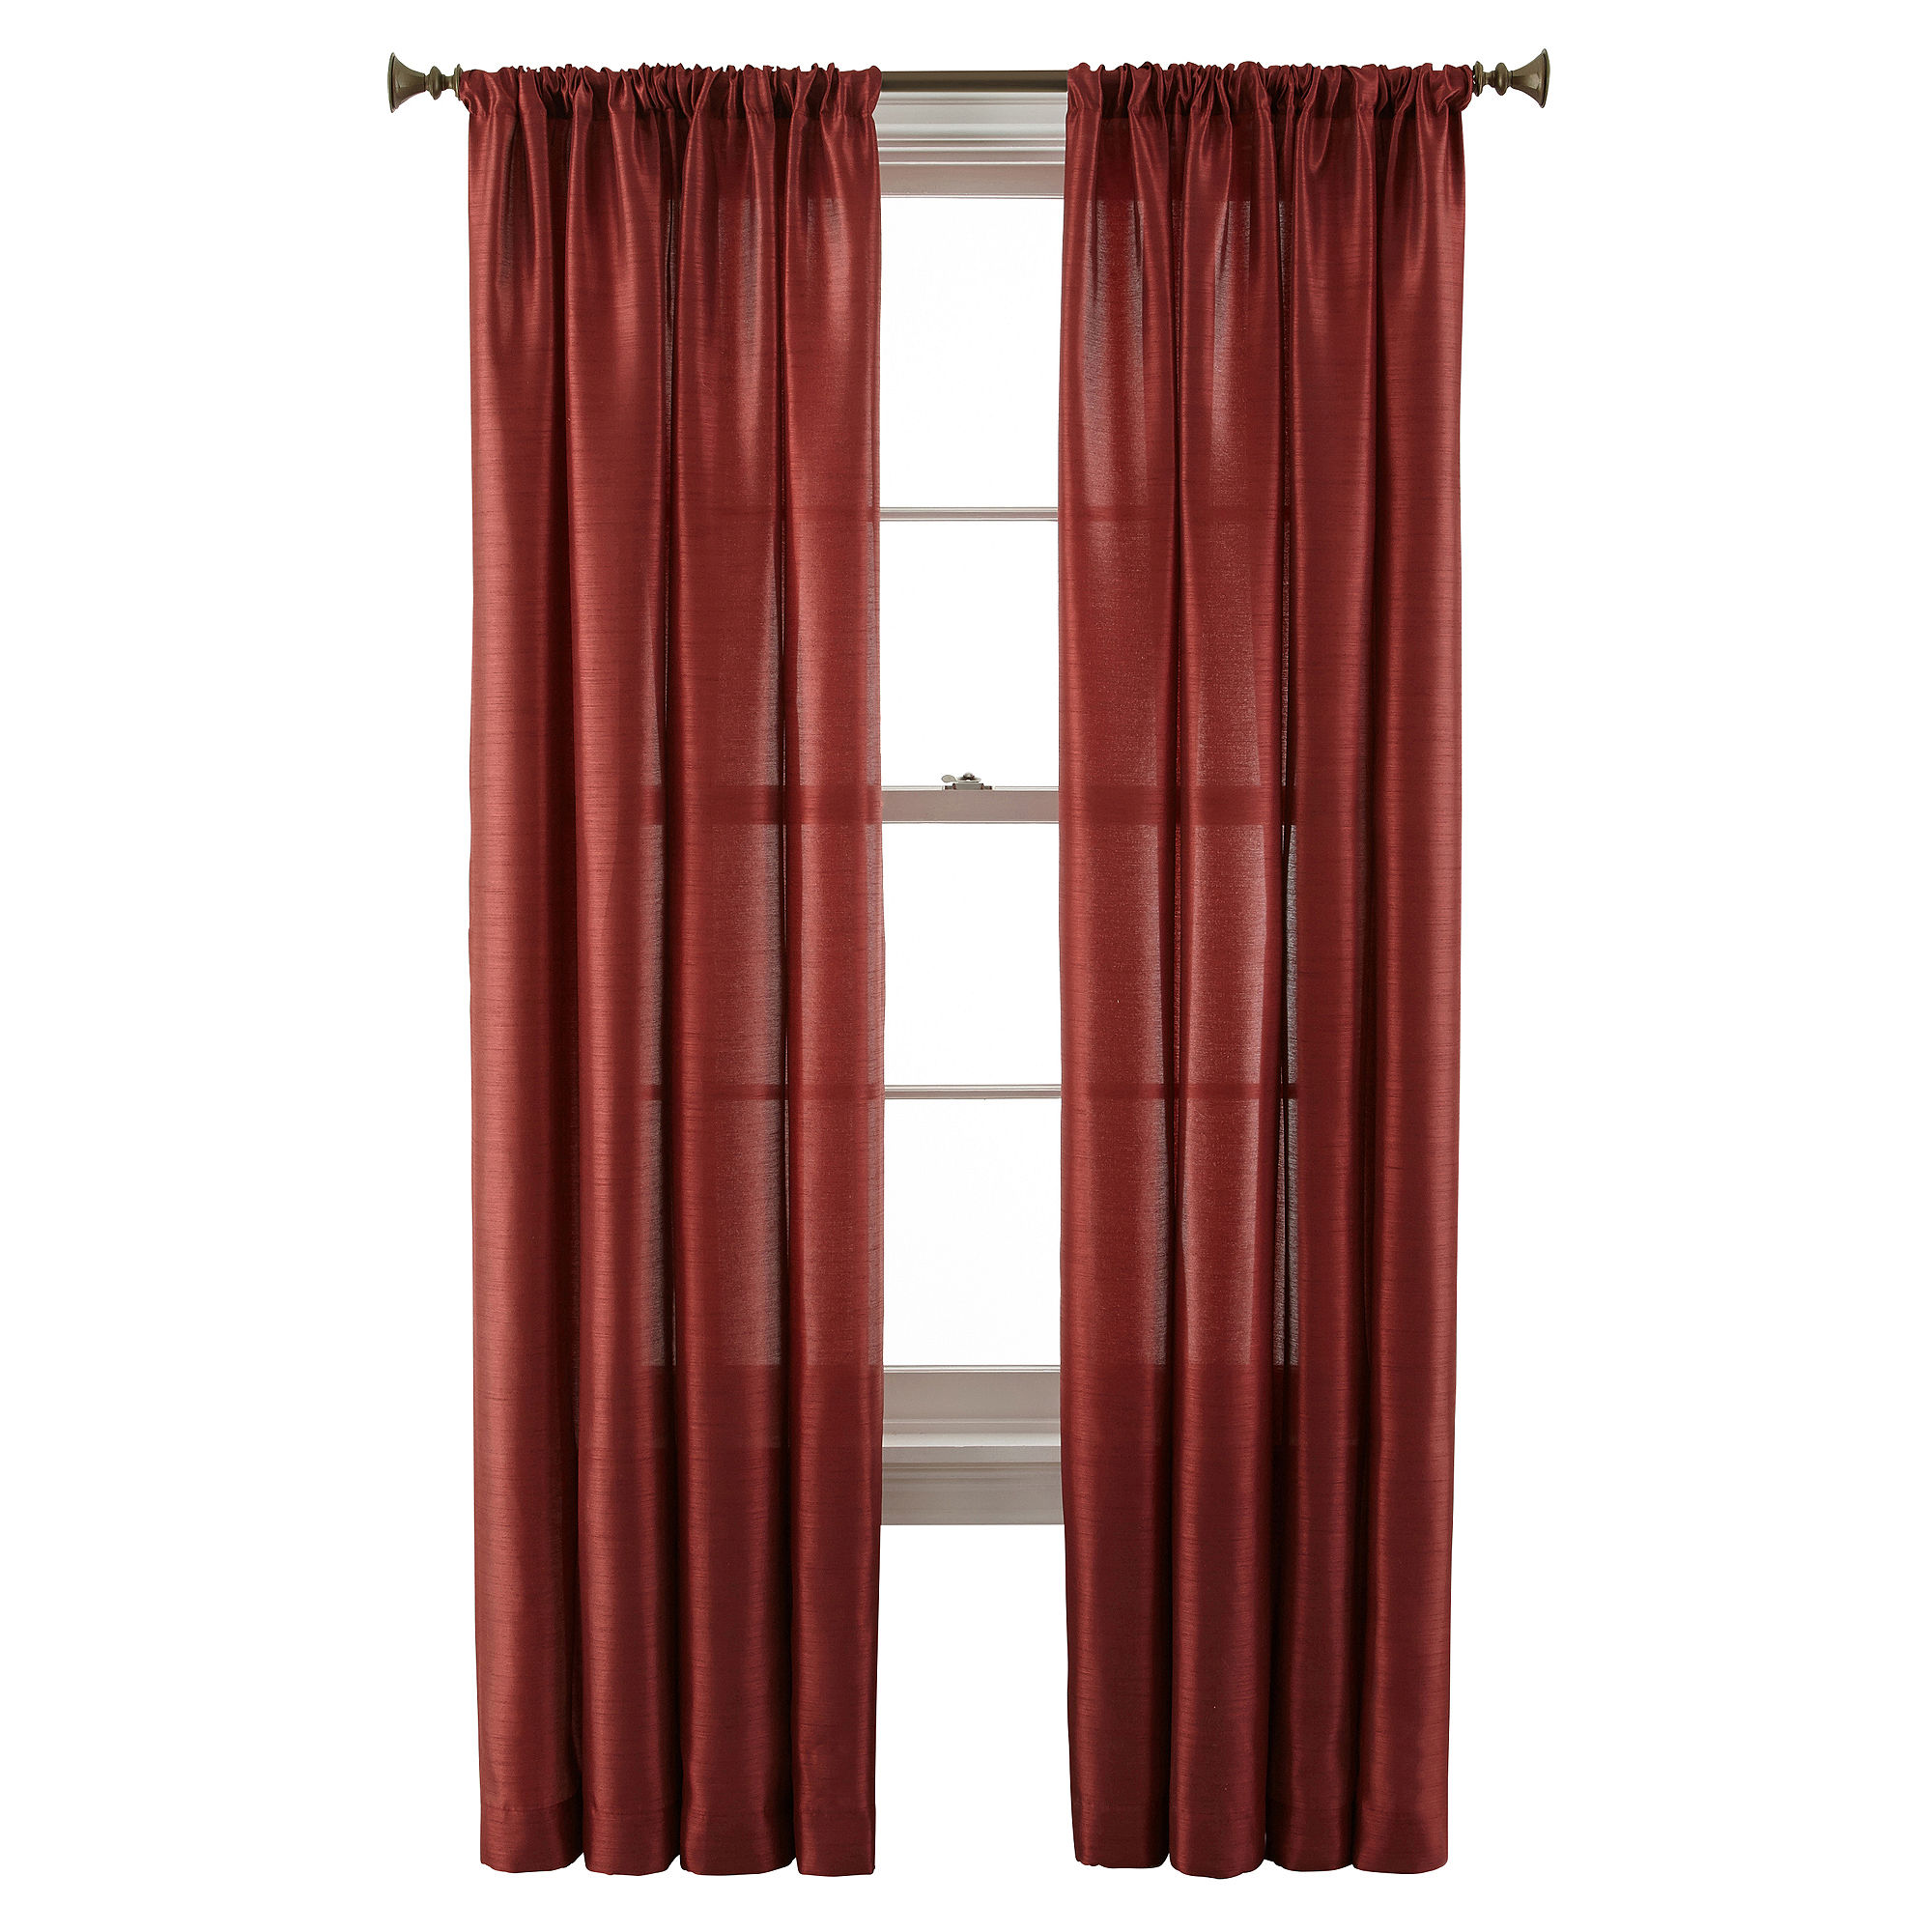 Upc 073109870034 Royal Velvet Britton Rod Pocket Curtain